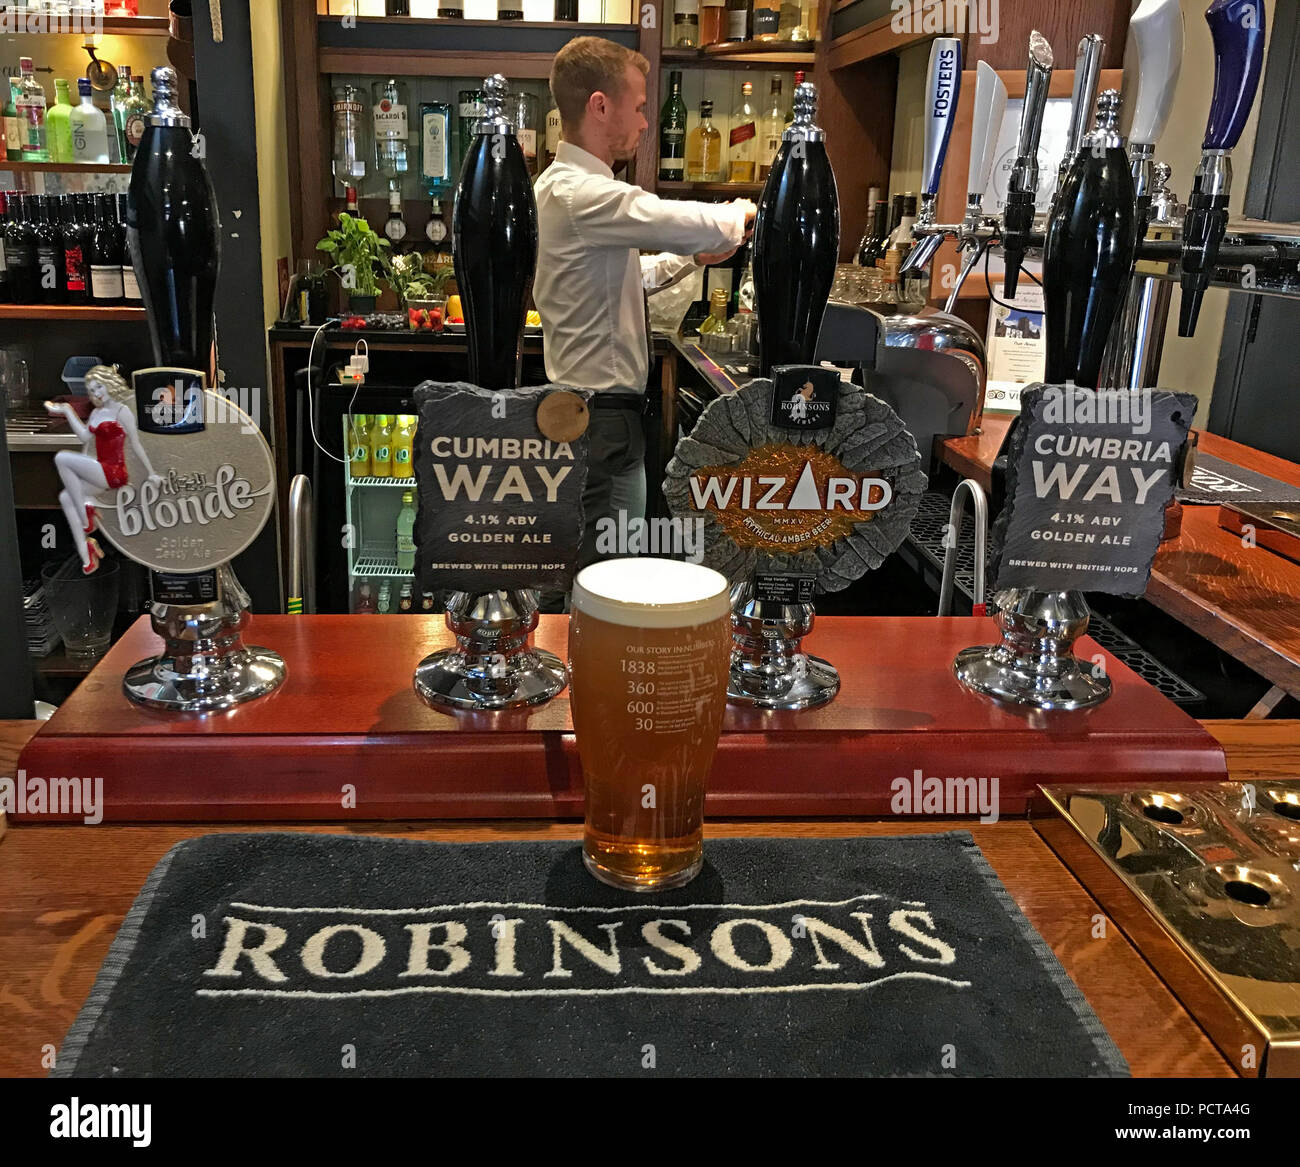 Frederic Robinson Ales, on a bar, Parr Arms,Grappenhall,Warrington,Cheshire,North West England,UK - Stock Image